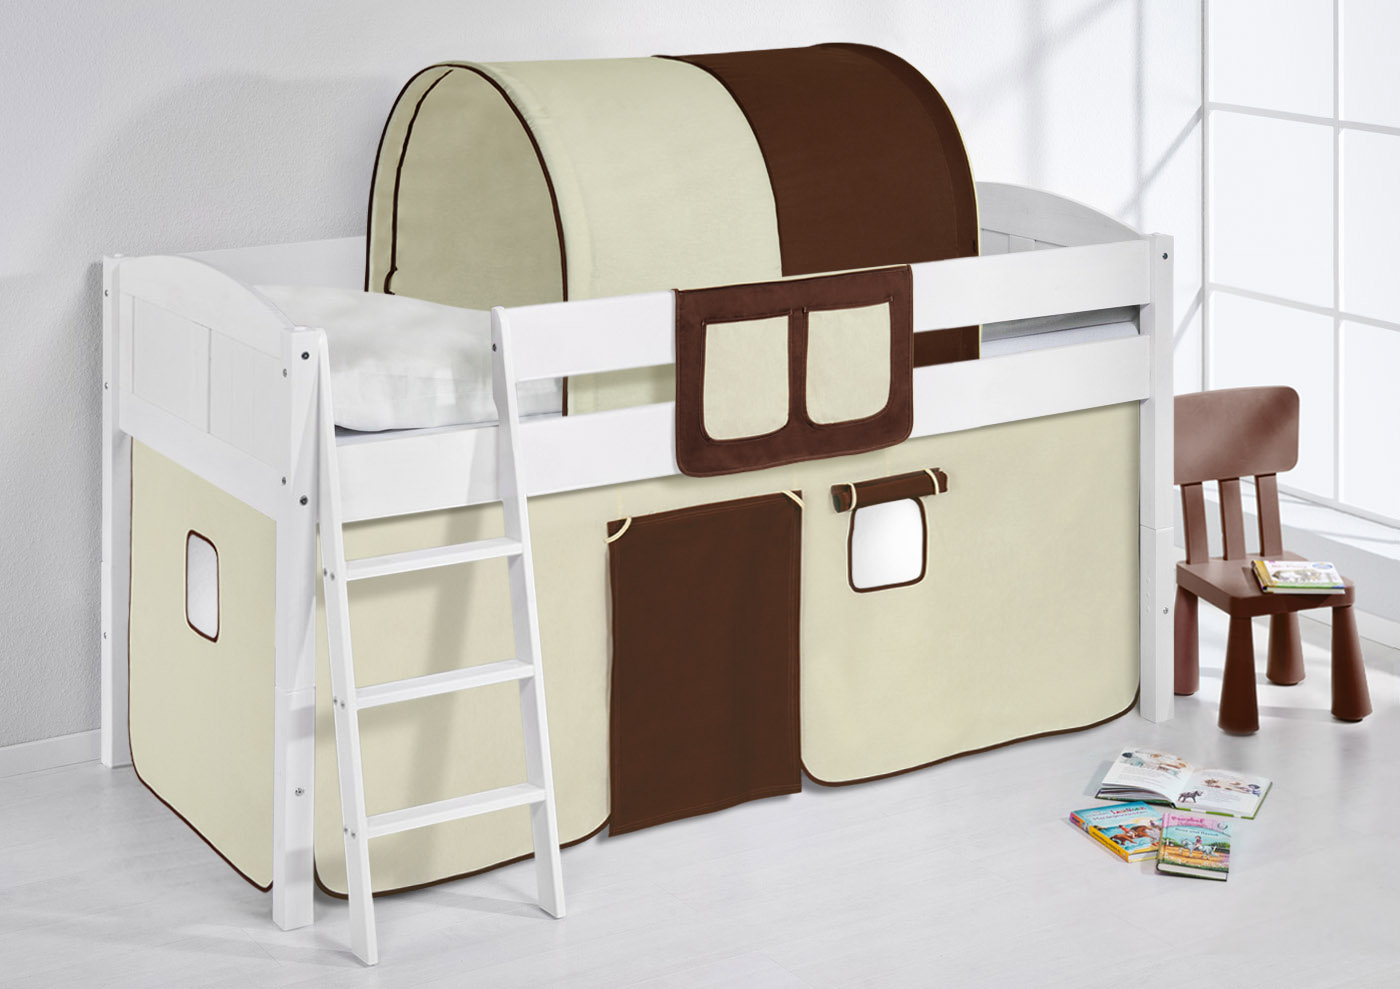 spielbett hochbett kinderbett kinder bett umbaubar zum einzelbett 4106. Black Bedroom Furniture Sets. Home Design Ideas